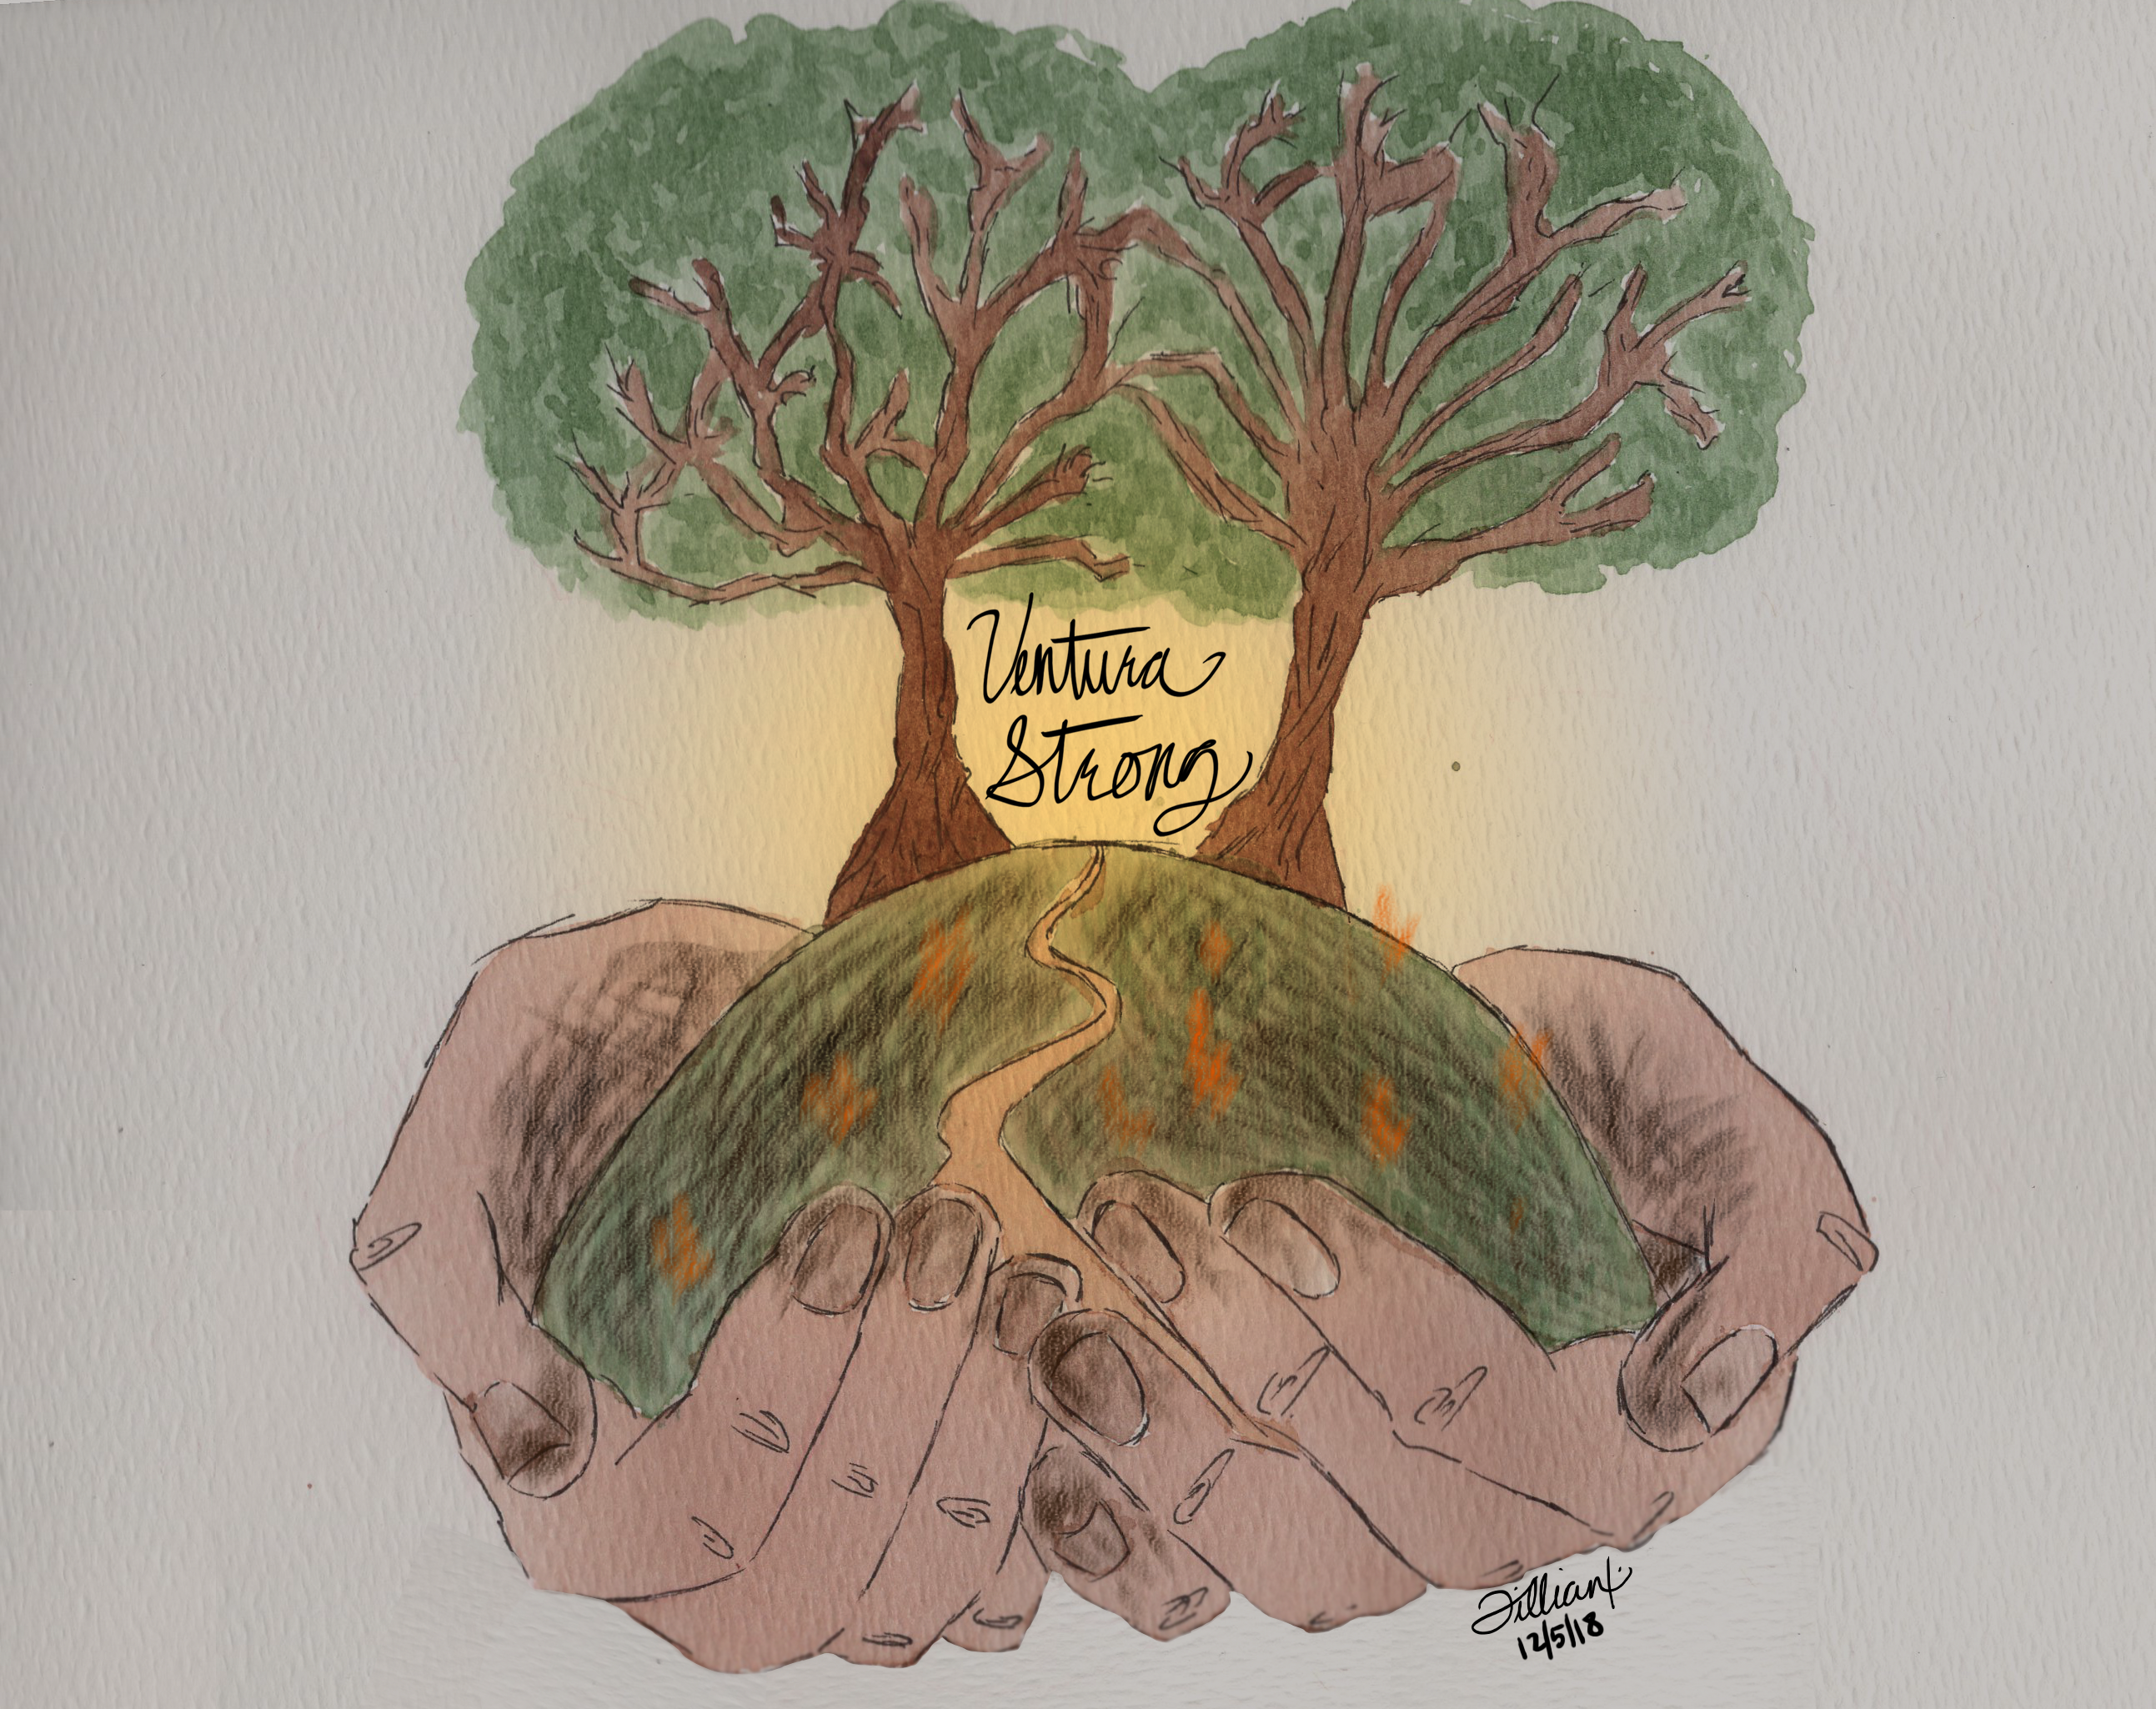 Ventura Strong - Two Trees Lives On